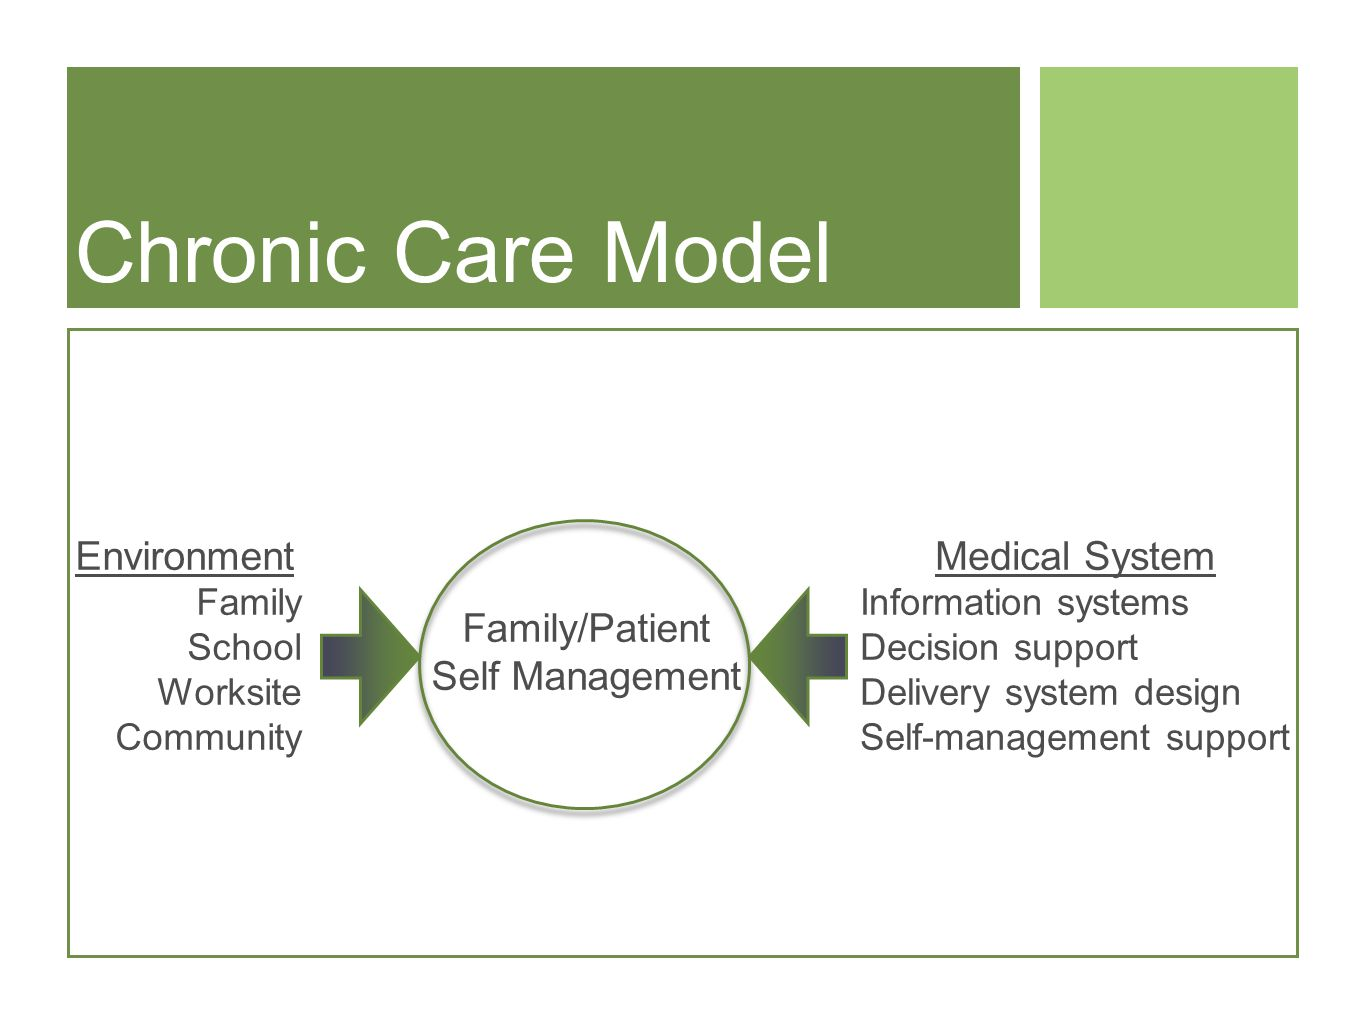 Chronic Care Model Family/Patient Self Management Environment Family School Worksite Community Medical System Information systems Decision support Delivery system design Self-management support